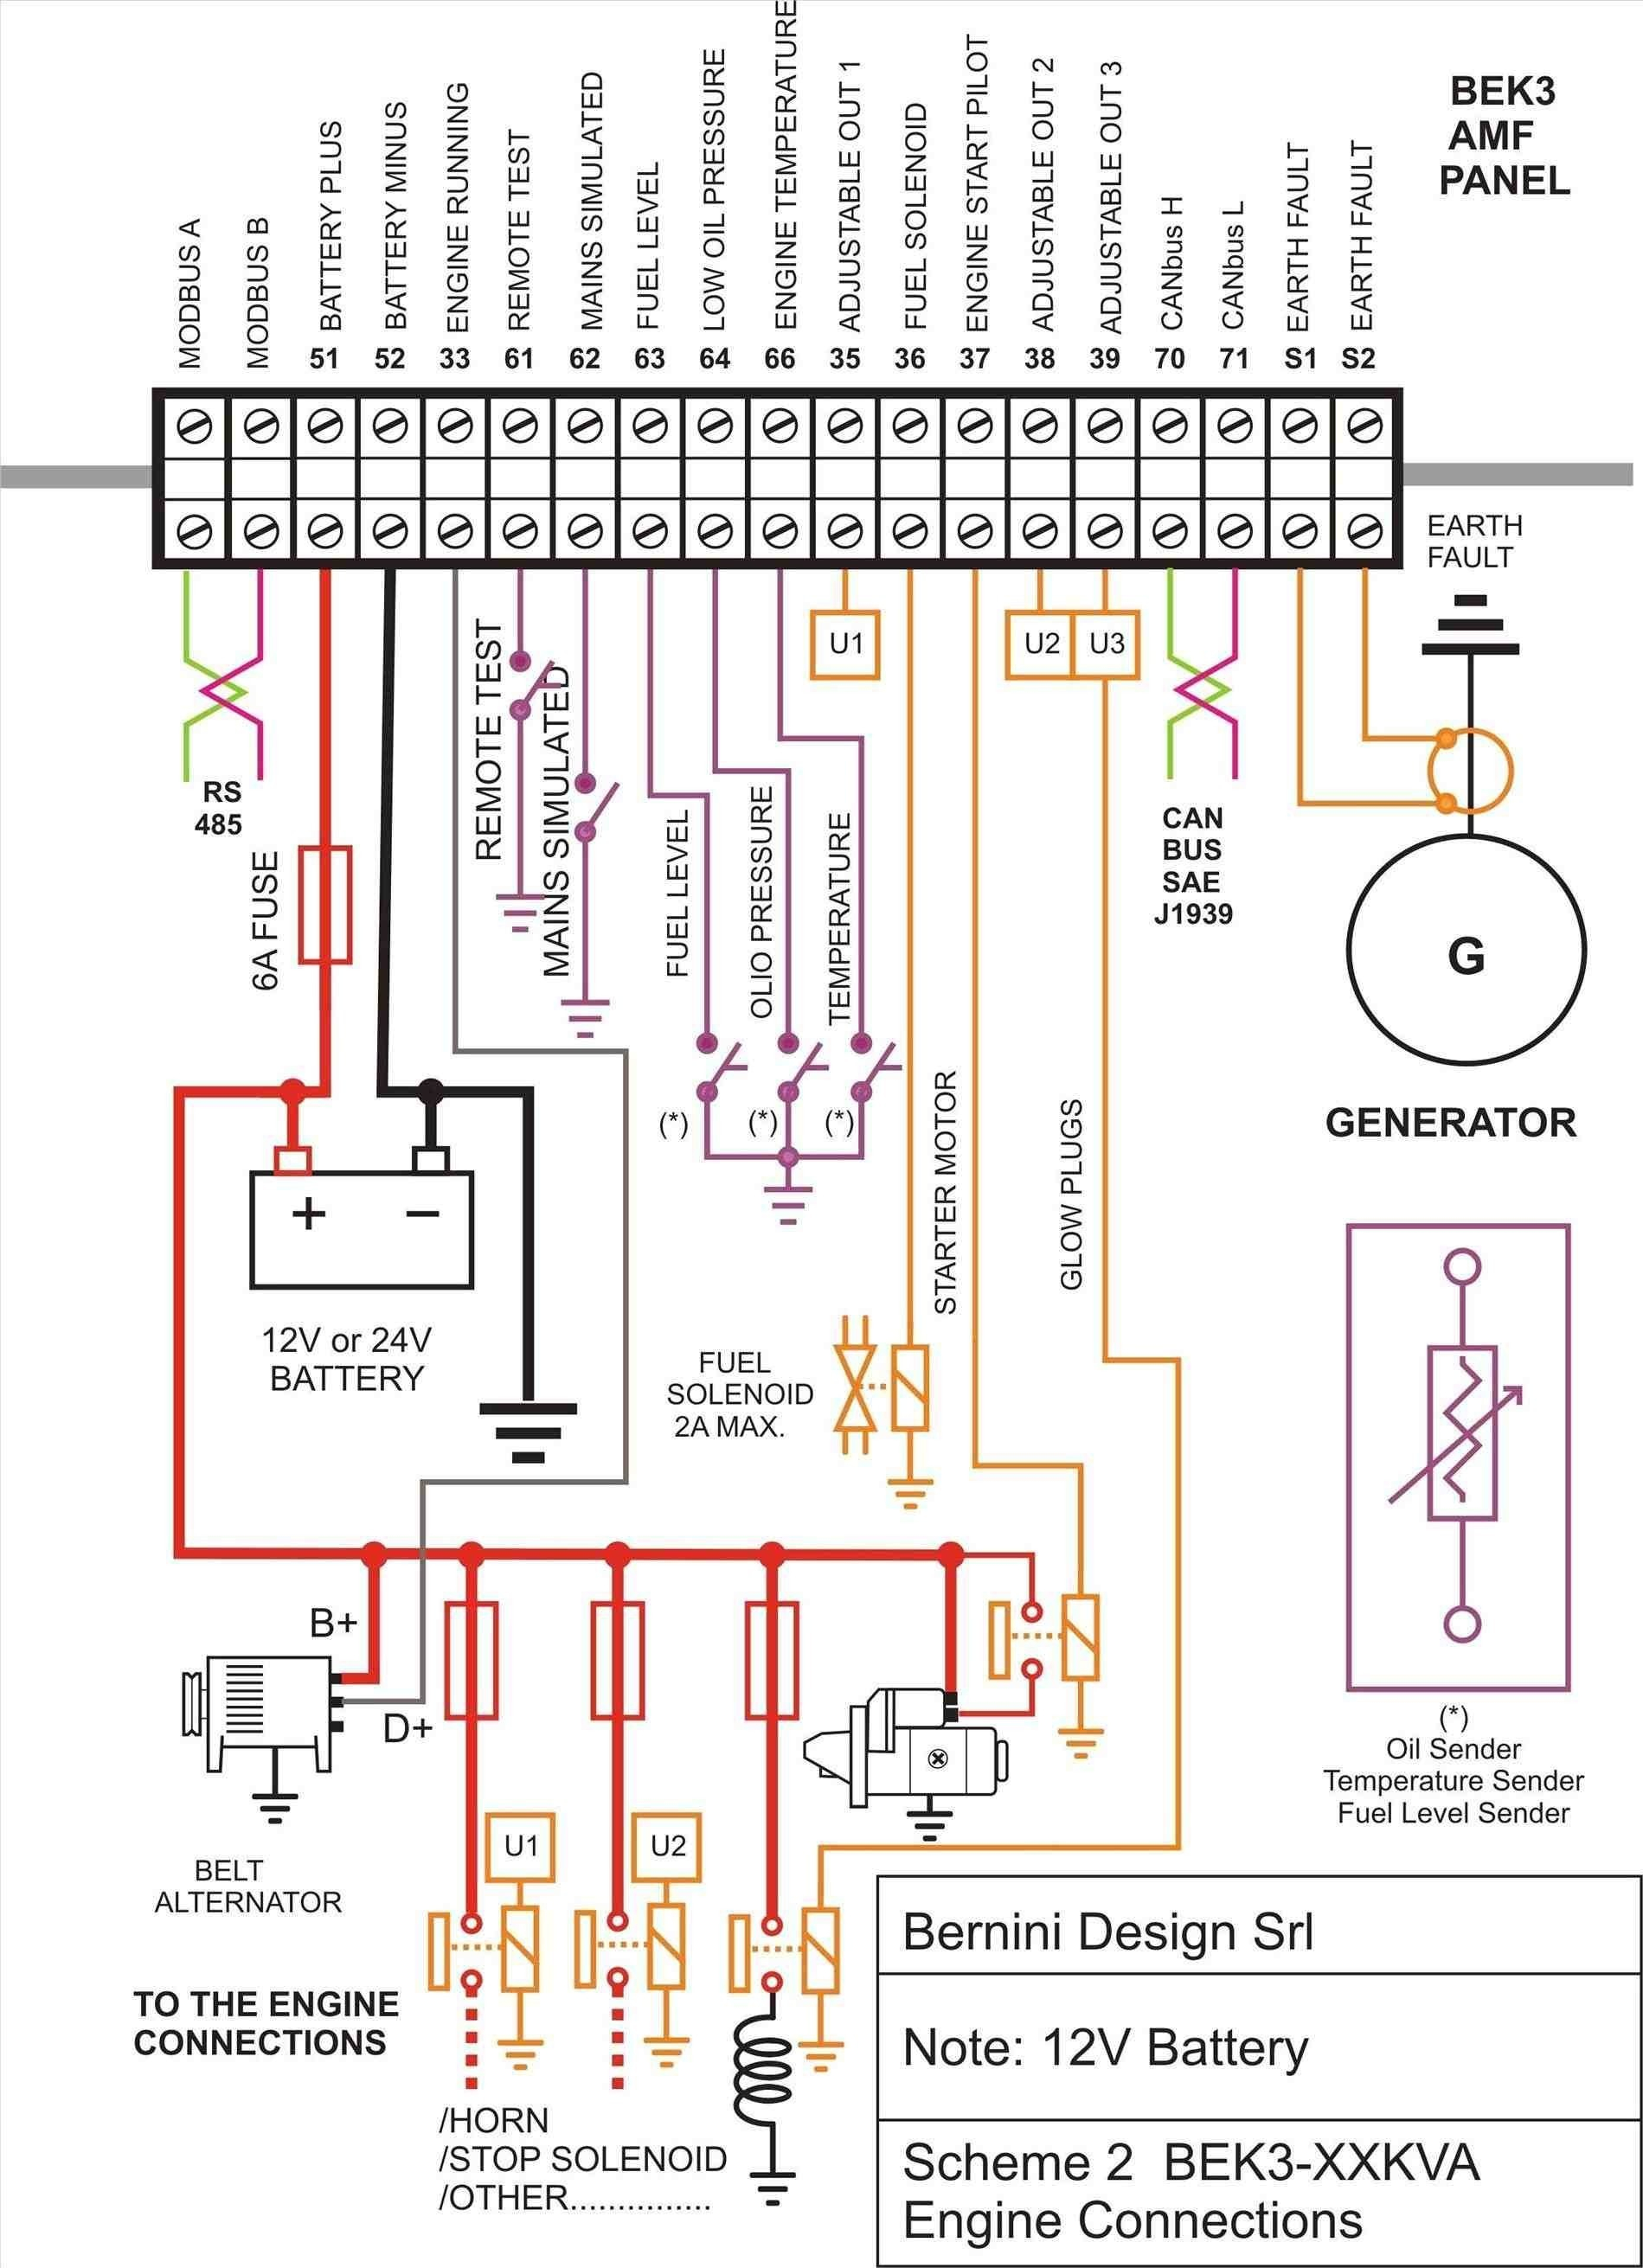 house wiring diagram pdf Collection-House Wiring Circuit Diagram Pdf Fresh Typical Wiring Diagram for House Valid Nice New Circuit Diagram 7-o